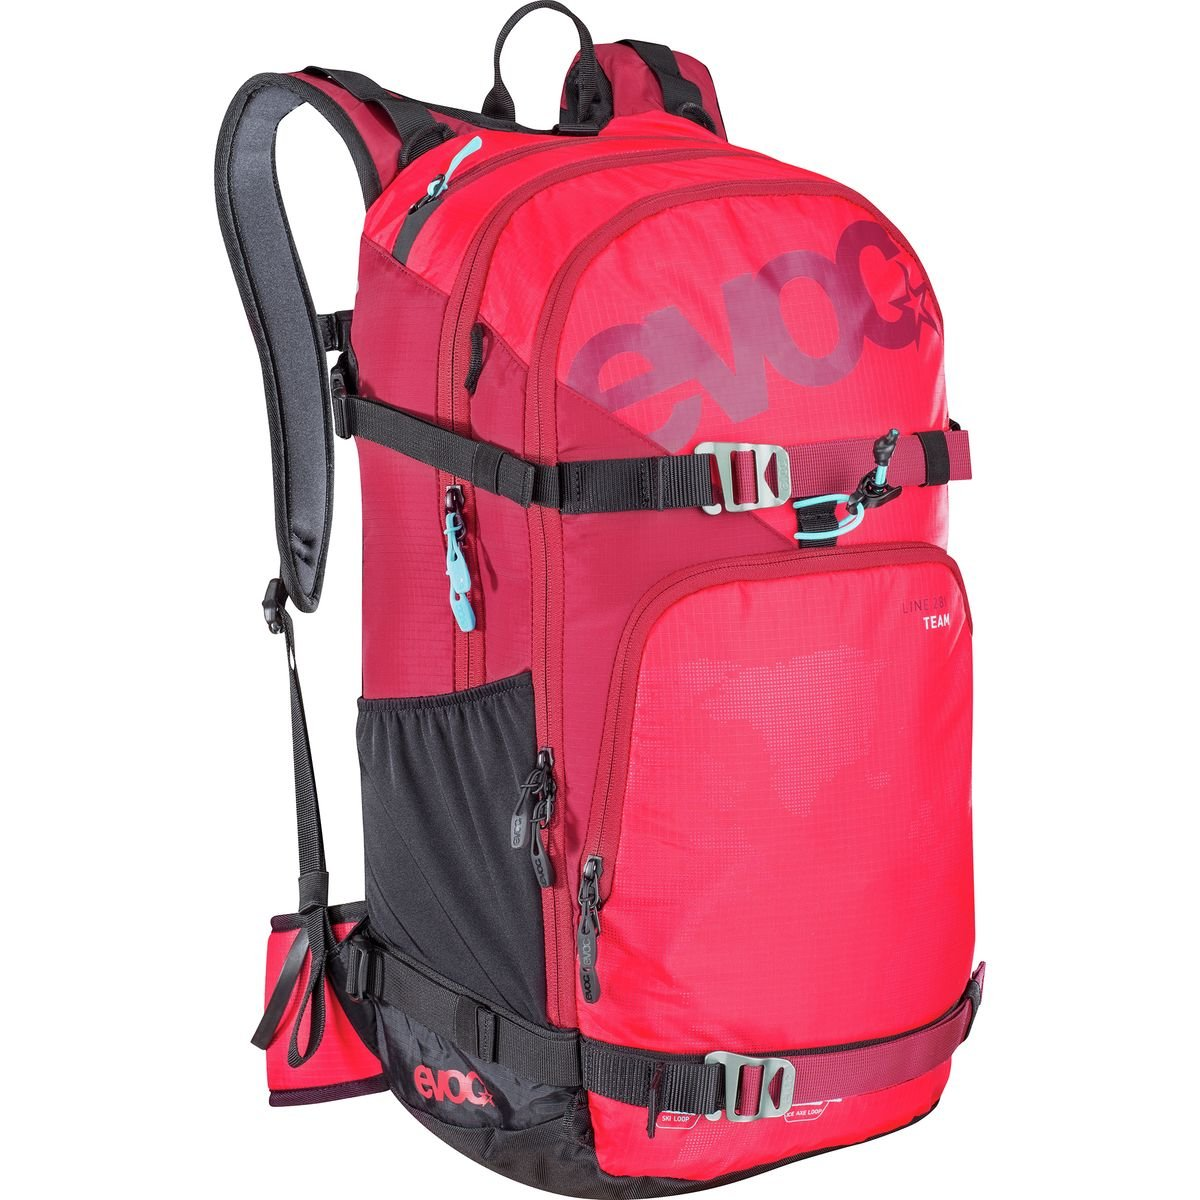 Evocラインチームバックパック – 1708 cu in B01LZ9KYFR  Red/Ruby One Size